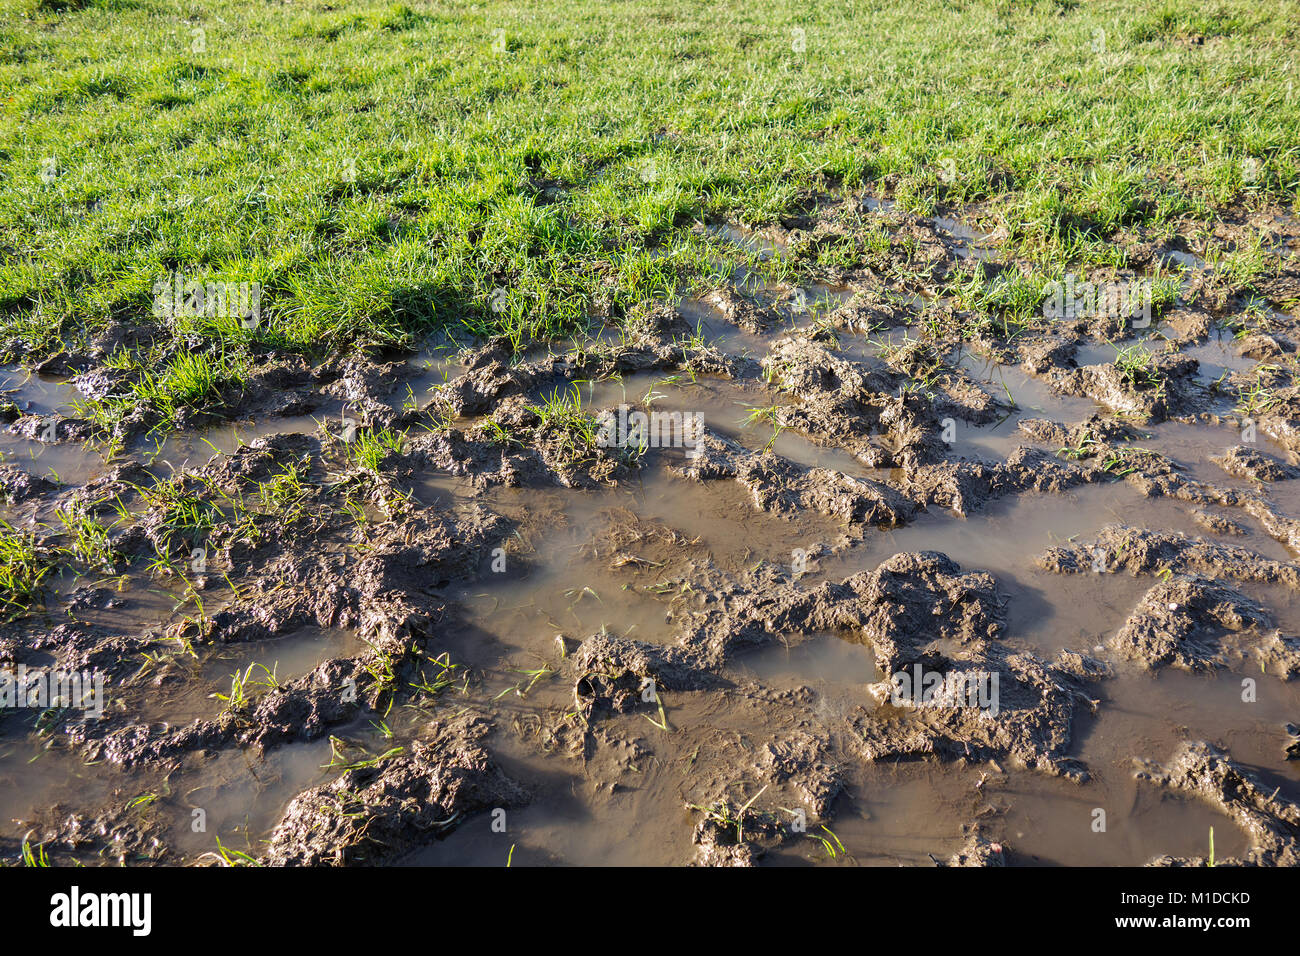 waterlogged flooded muddy sports pitch field garden lawn Stock Photo